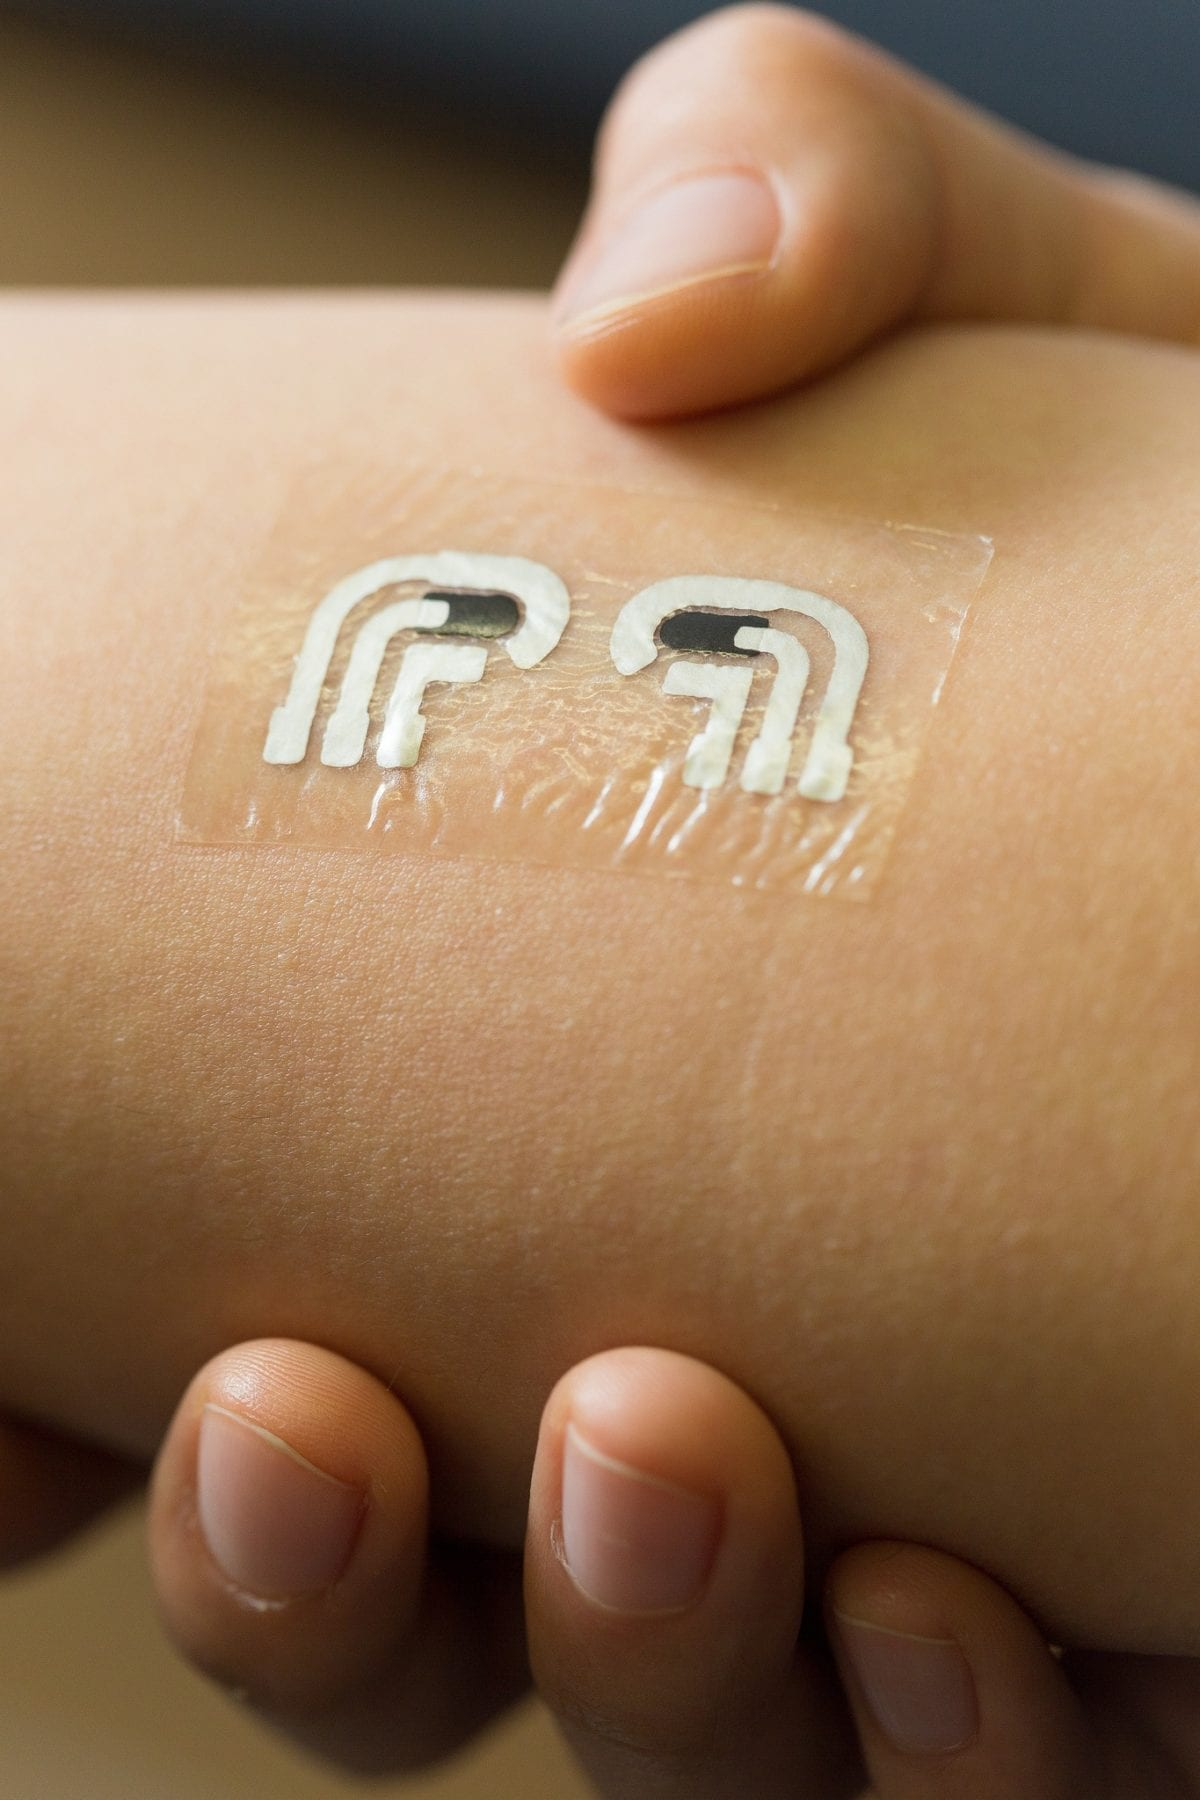 Tattoo-like sensor can detect glucose levels without a painful finger prick